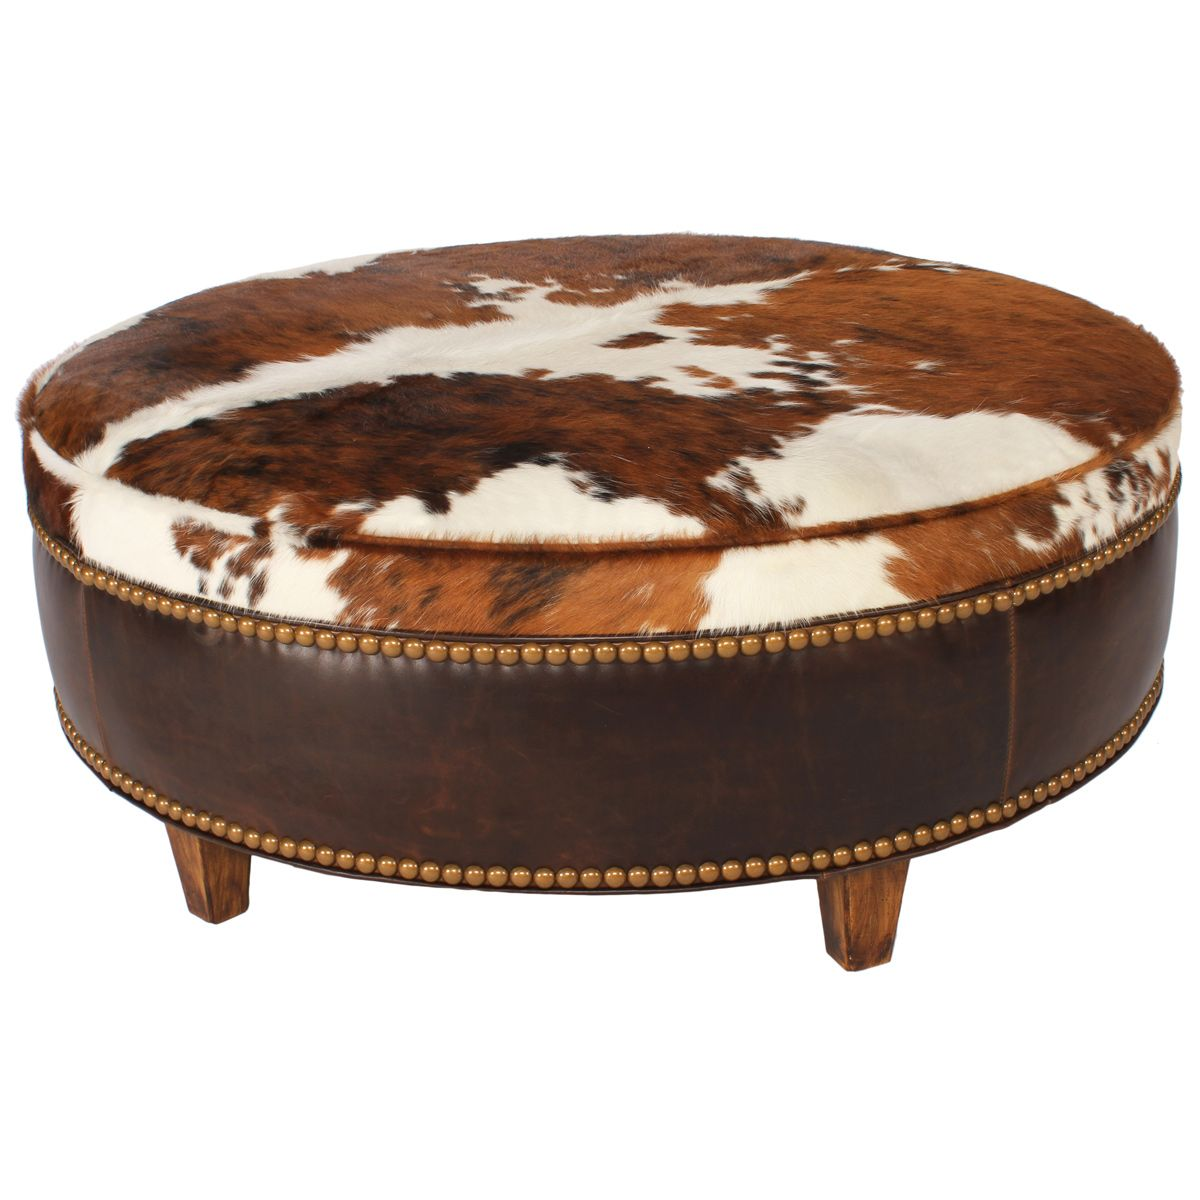 Ranch Collection Round Tricolor Cowhide Ottoman - 48 Inch